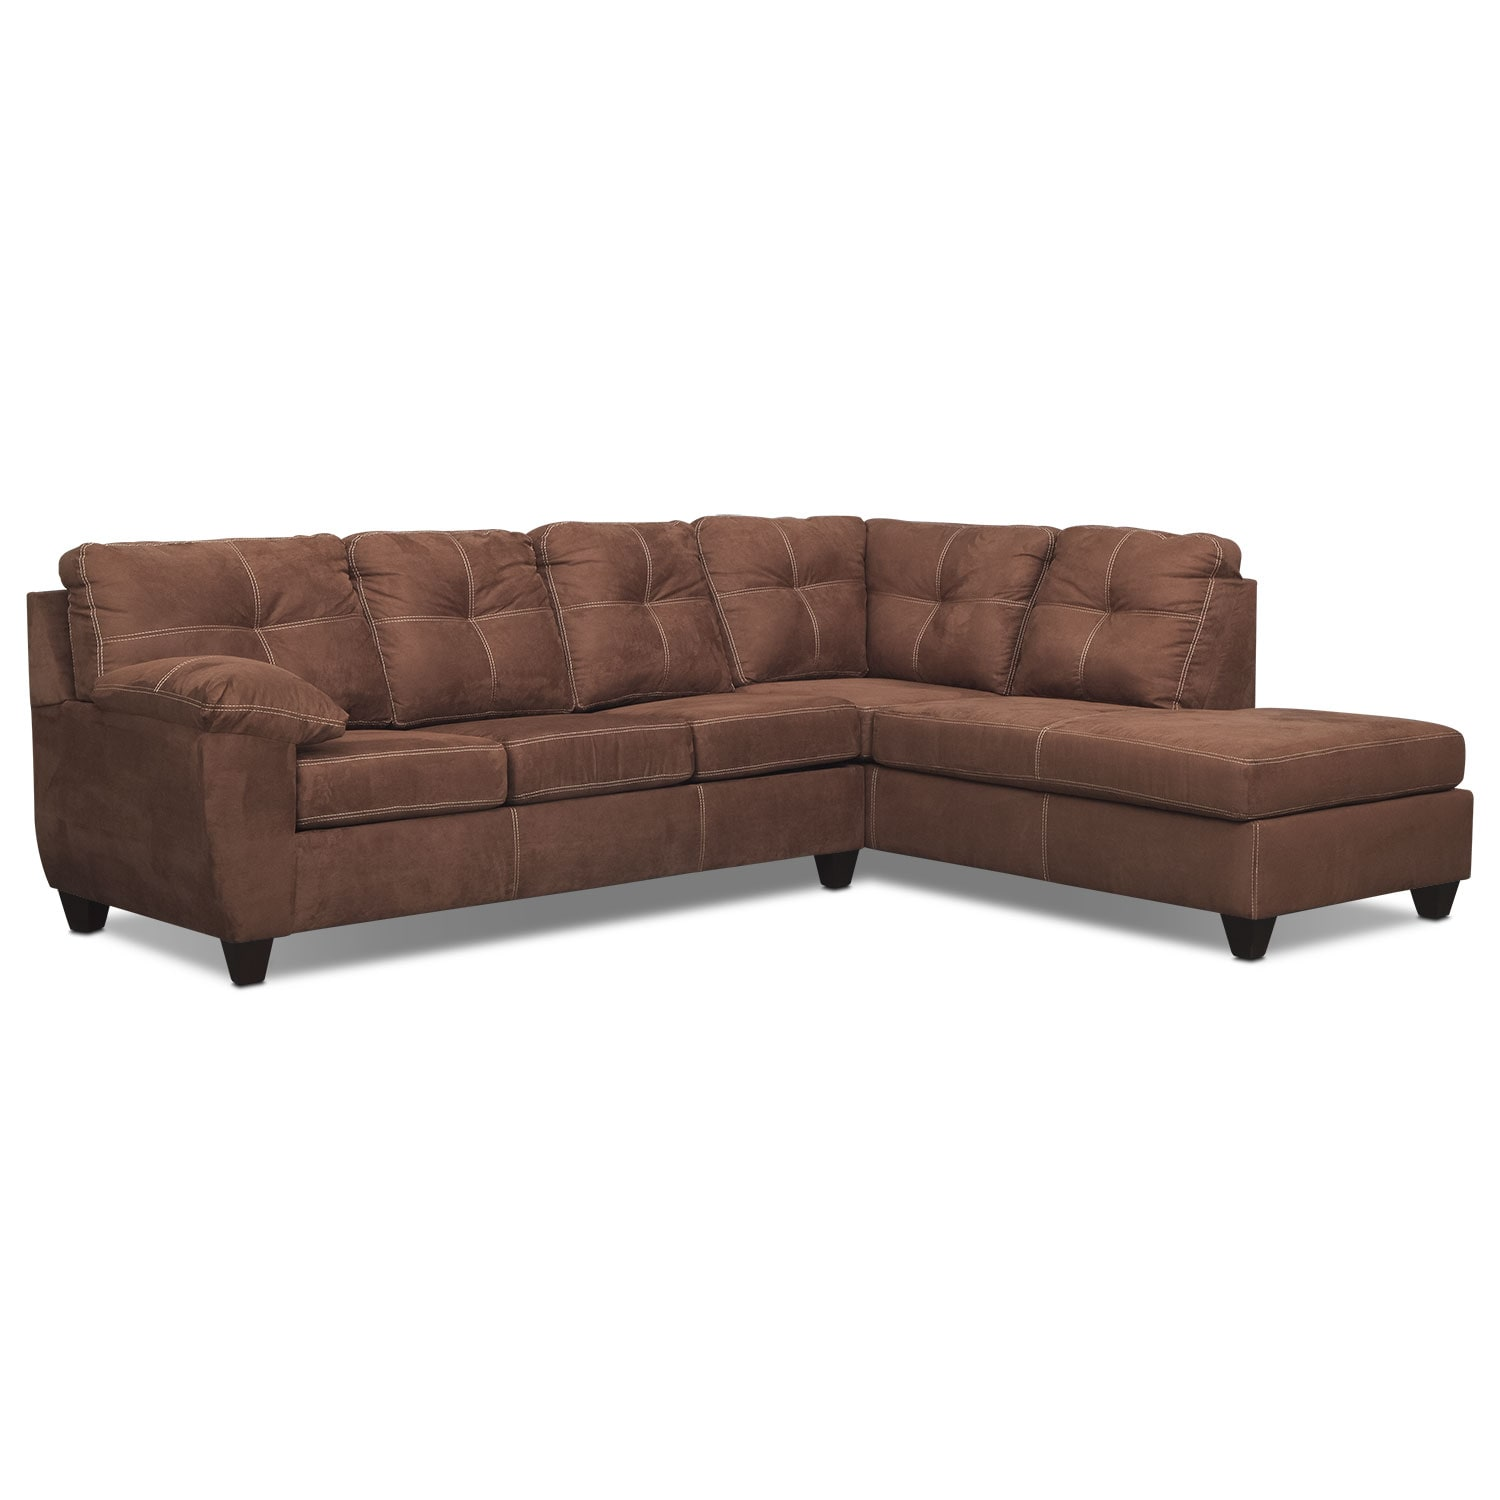 Rialto Coffee 2 Pc. Memory Foam Sleeper Sectional with Right-Facing Chaise